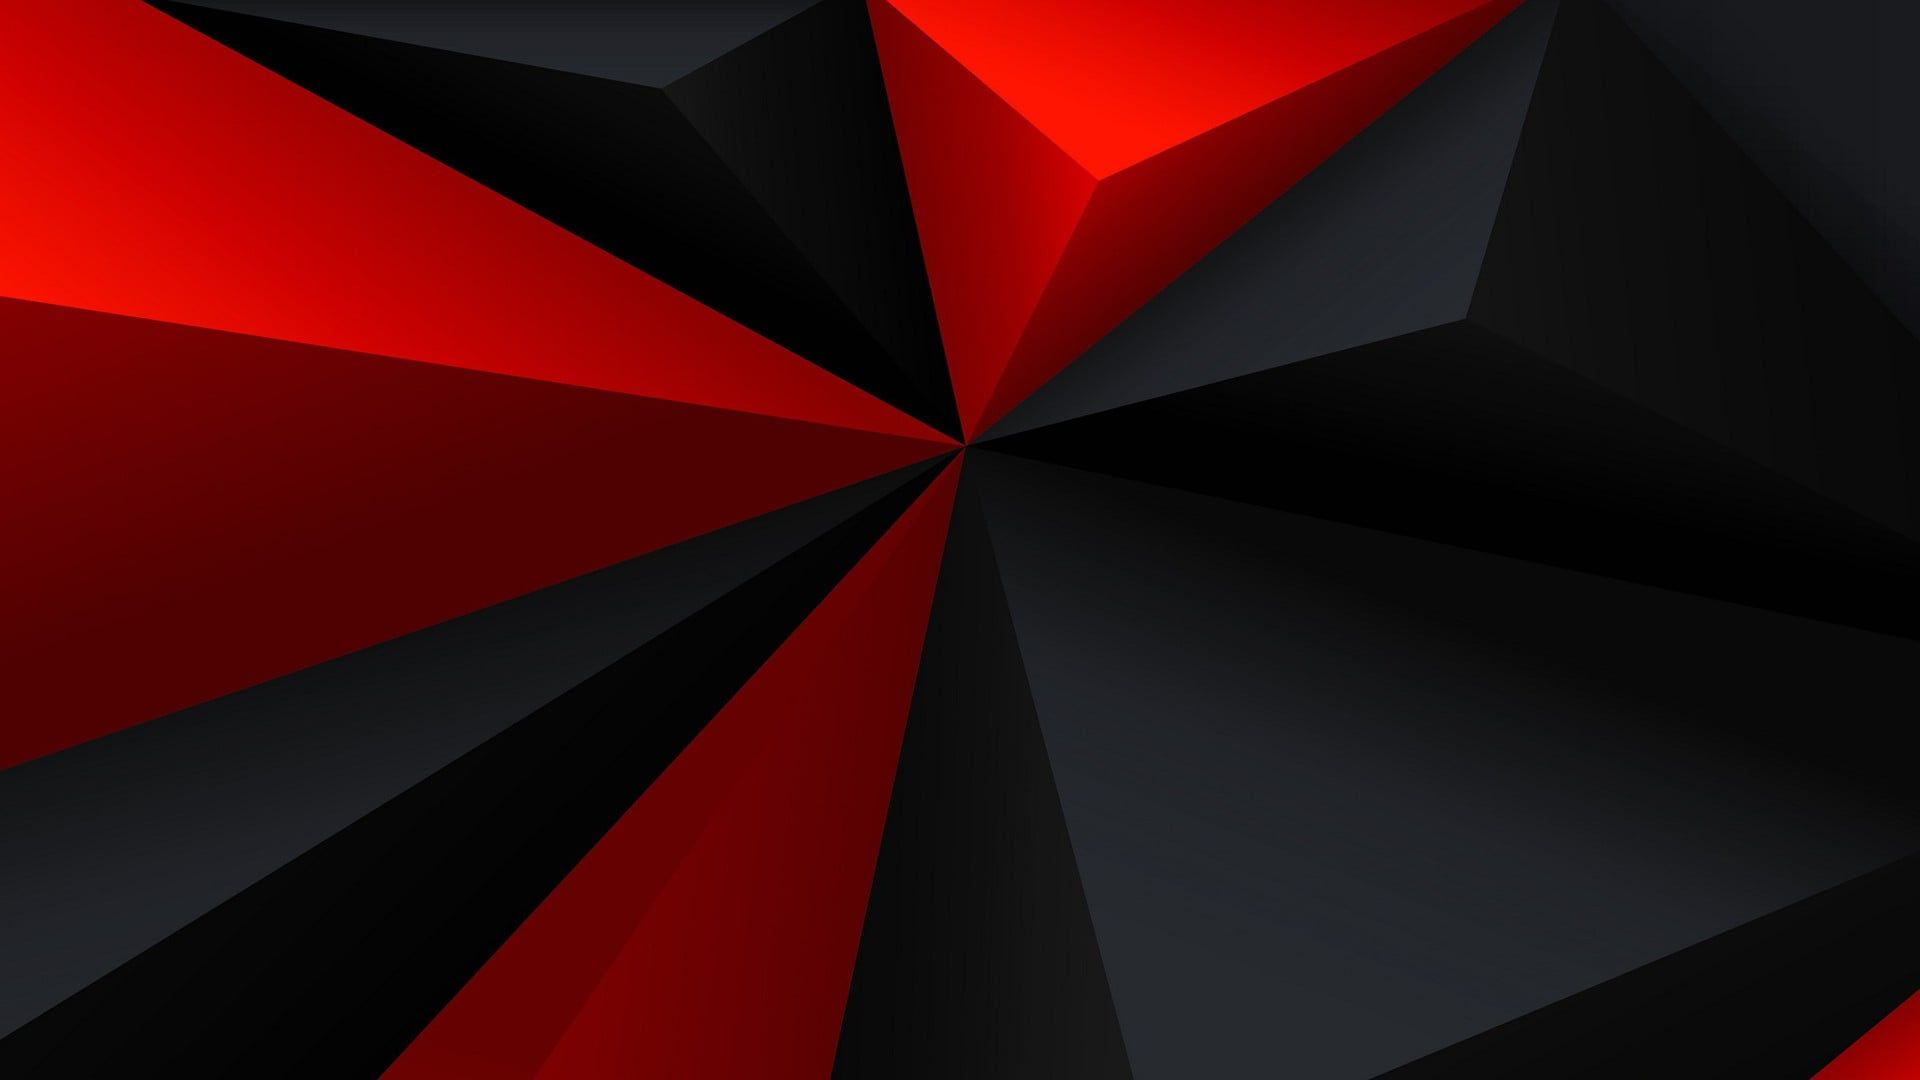 Red And Black 3d Wallpaper Digital Art Minimalism Low Poly Geometry Triangle Red Black G Red And Black Wallpaper Red And Black Background Black Wallpaper